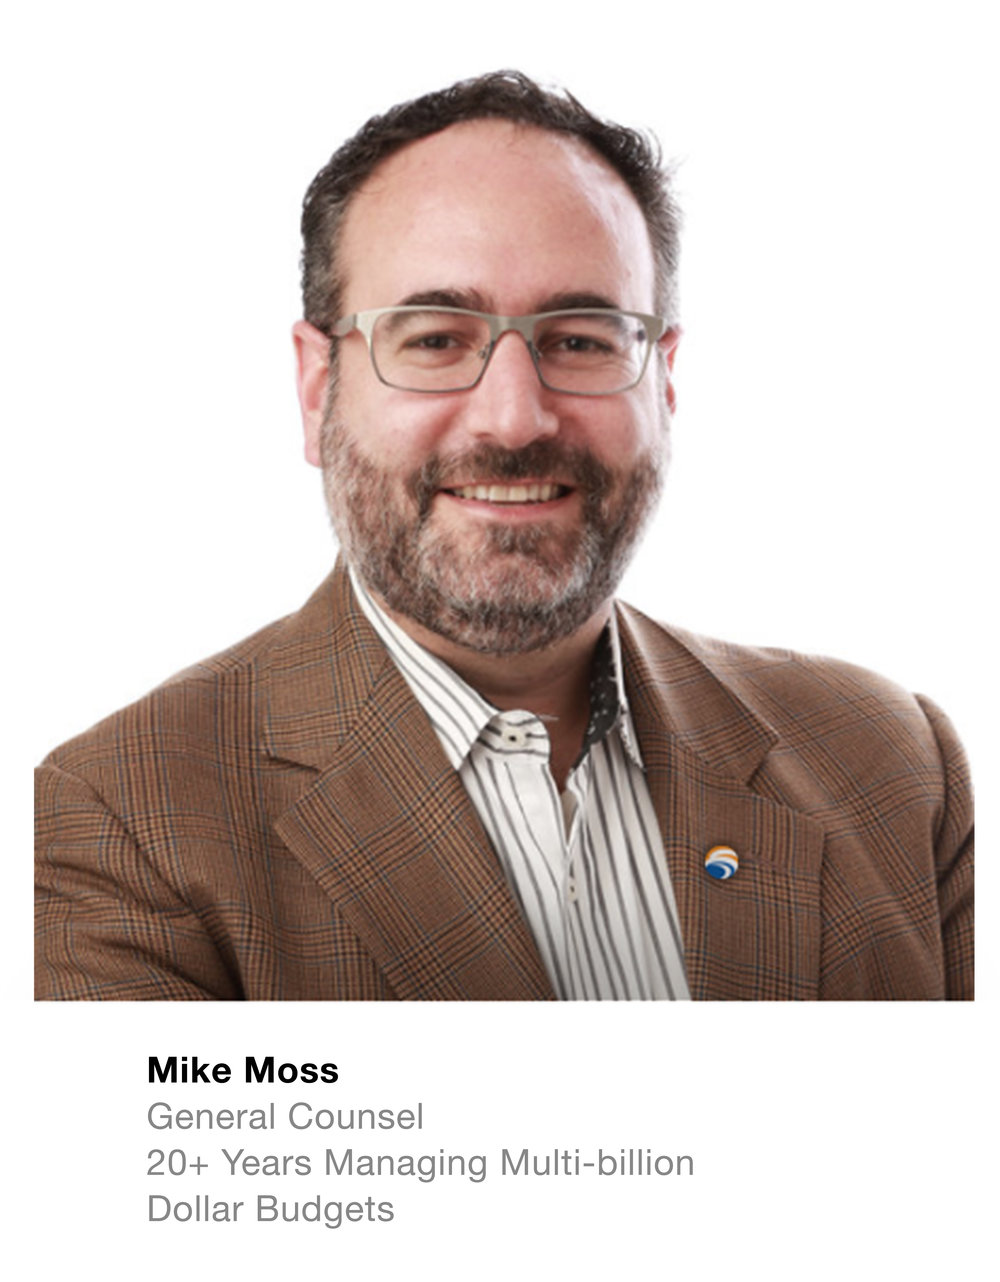 Mike Moss COO  20+ Years Managing Multi-billion Dollar Budgets